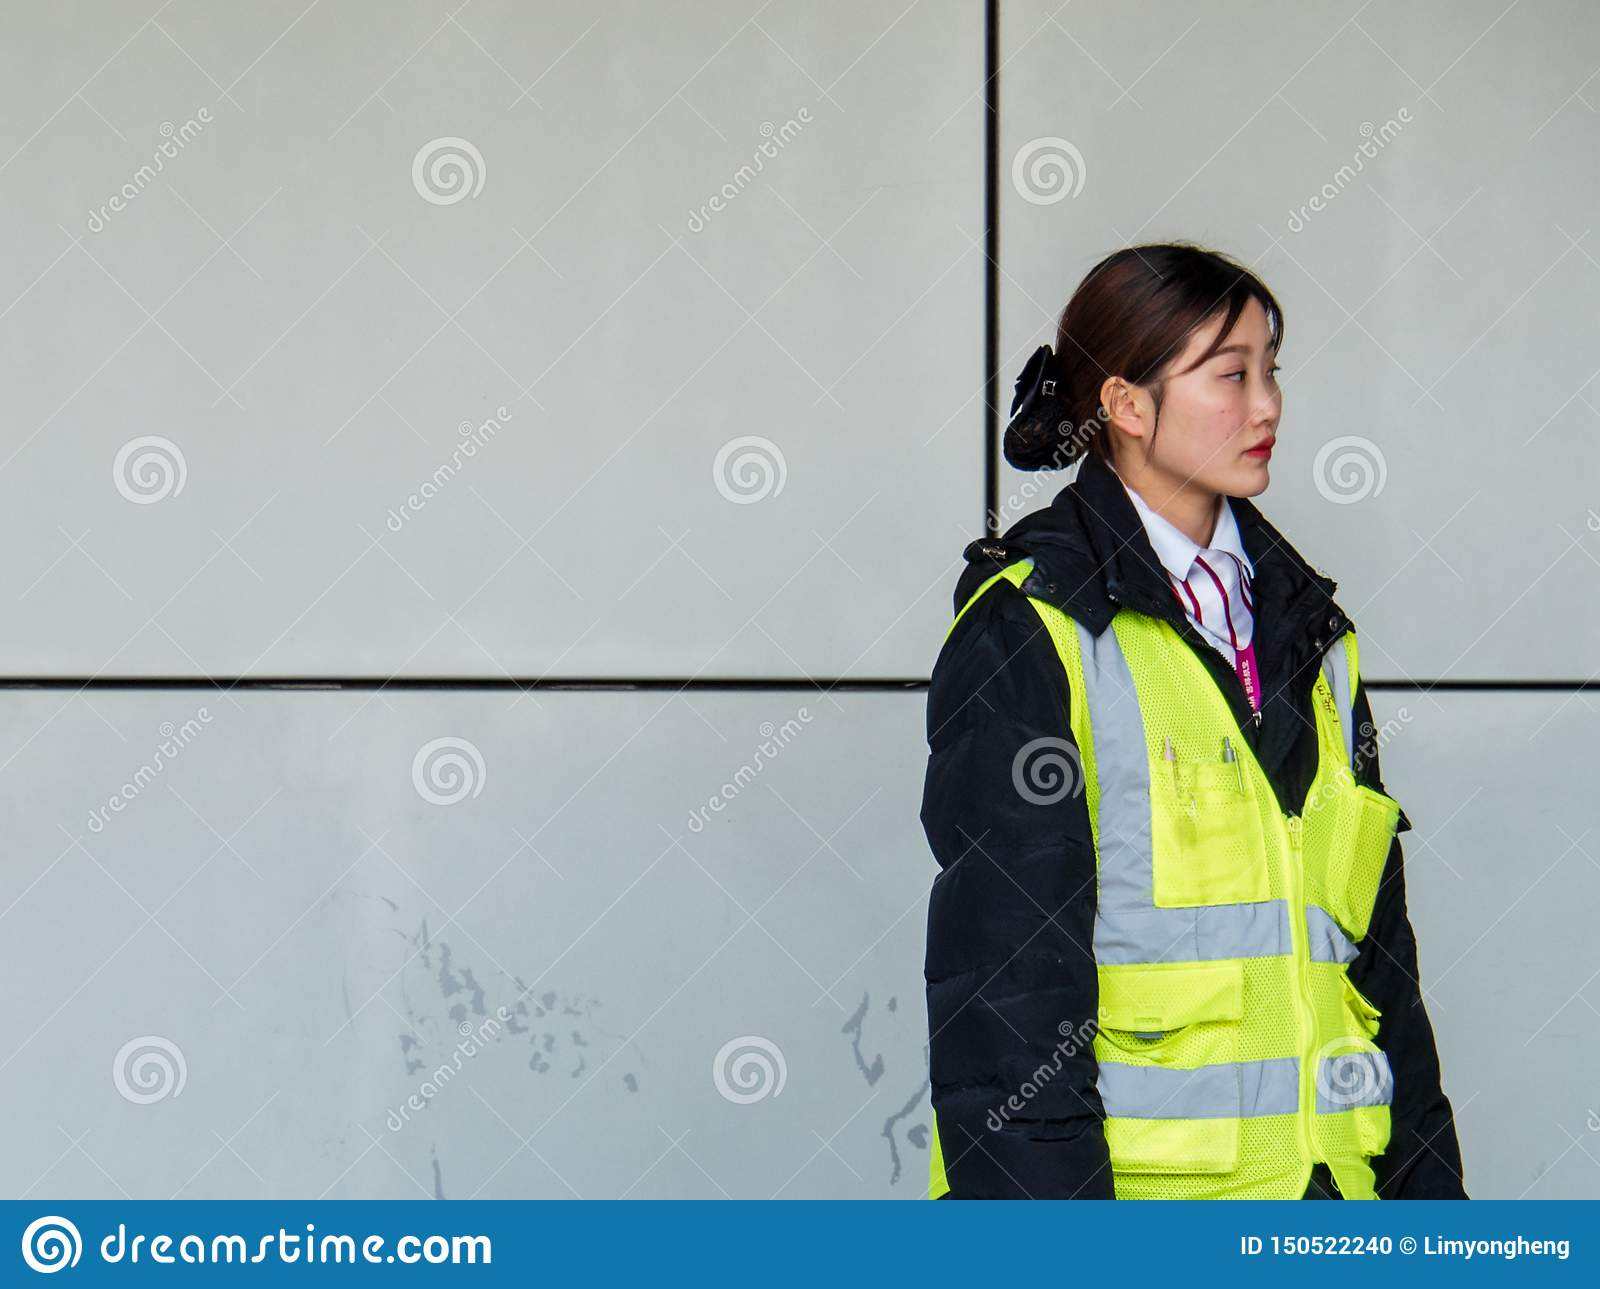 PUDONG, SHANGHAI - 13 MAR 2019 - A female airport employee at Pudong Airport, Shanghai with copy space